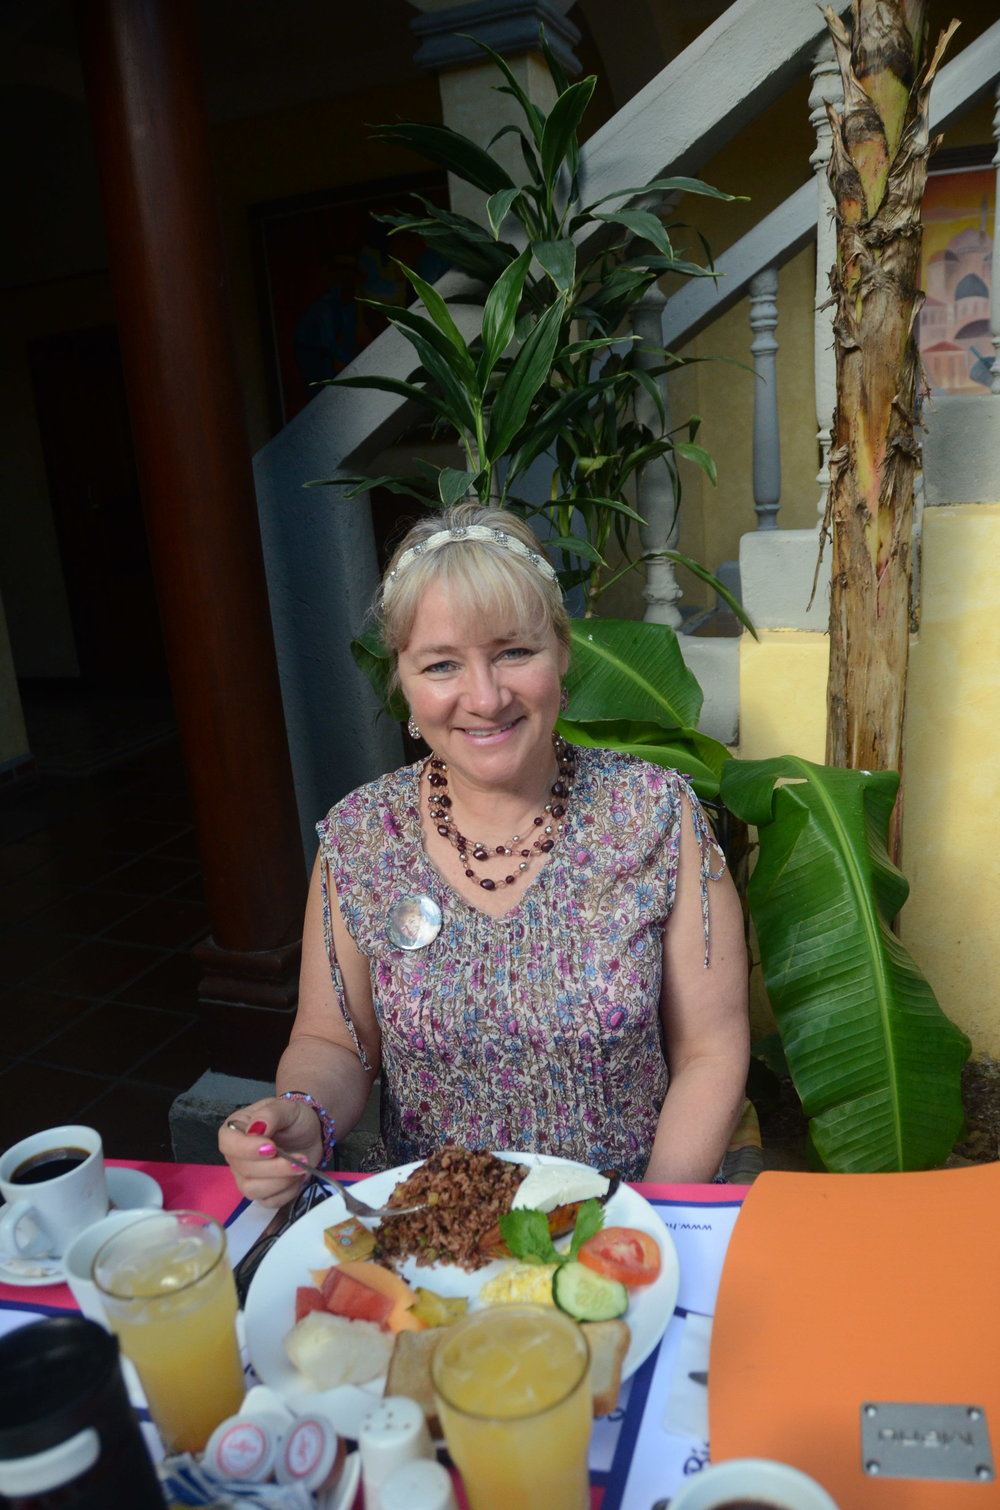 My beautiful friend Amy with a lovely breakfast at hand.